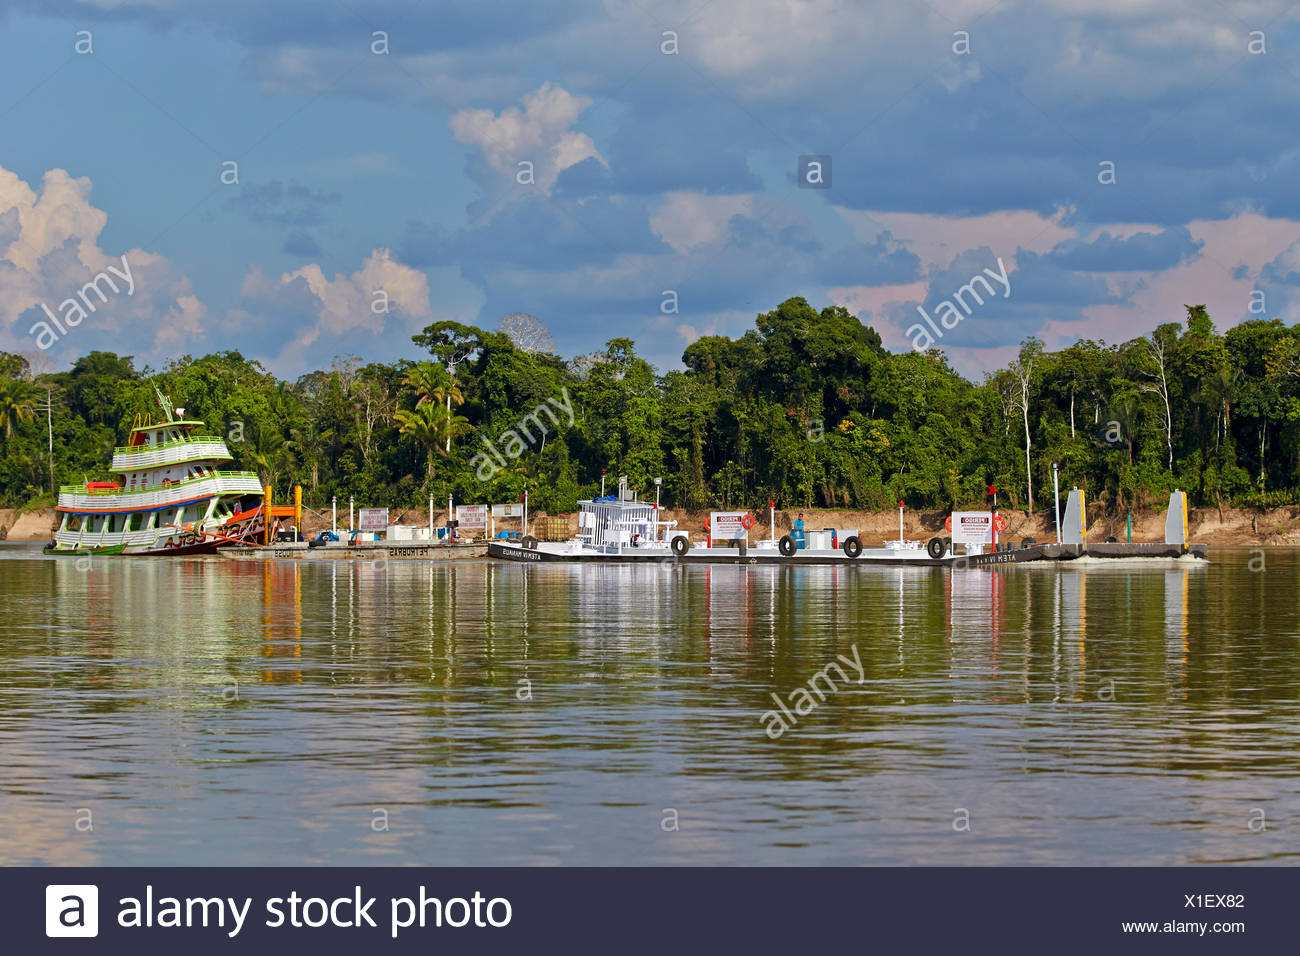 Towboat and barge on the Rio Purus - Brazil Amazon - Stock Image